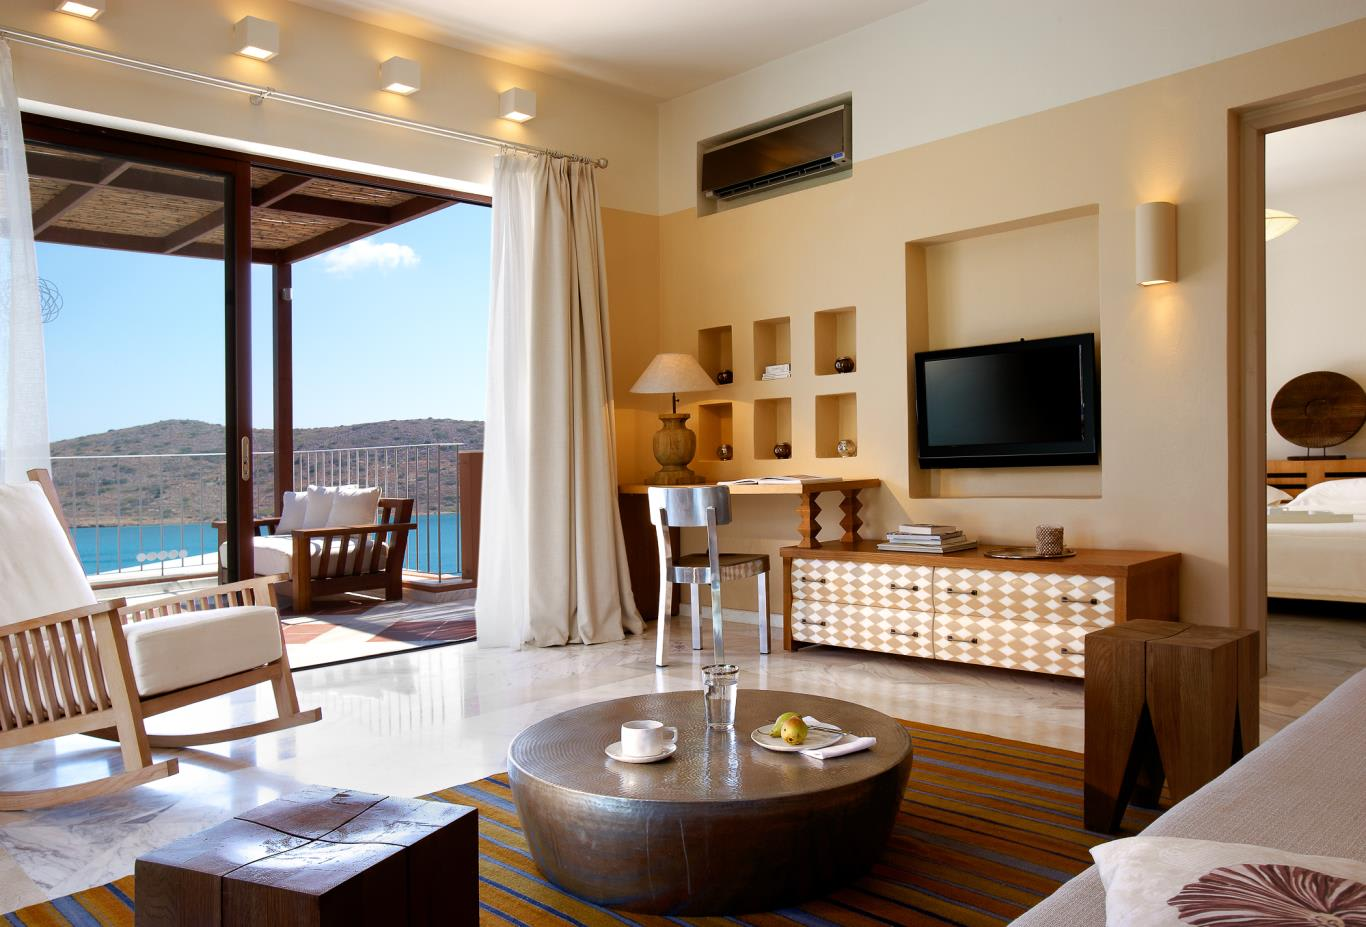 Premium One Bedroom Suite with Outdoor Jacuzzi living room